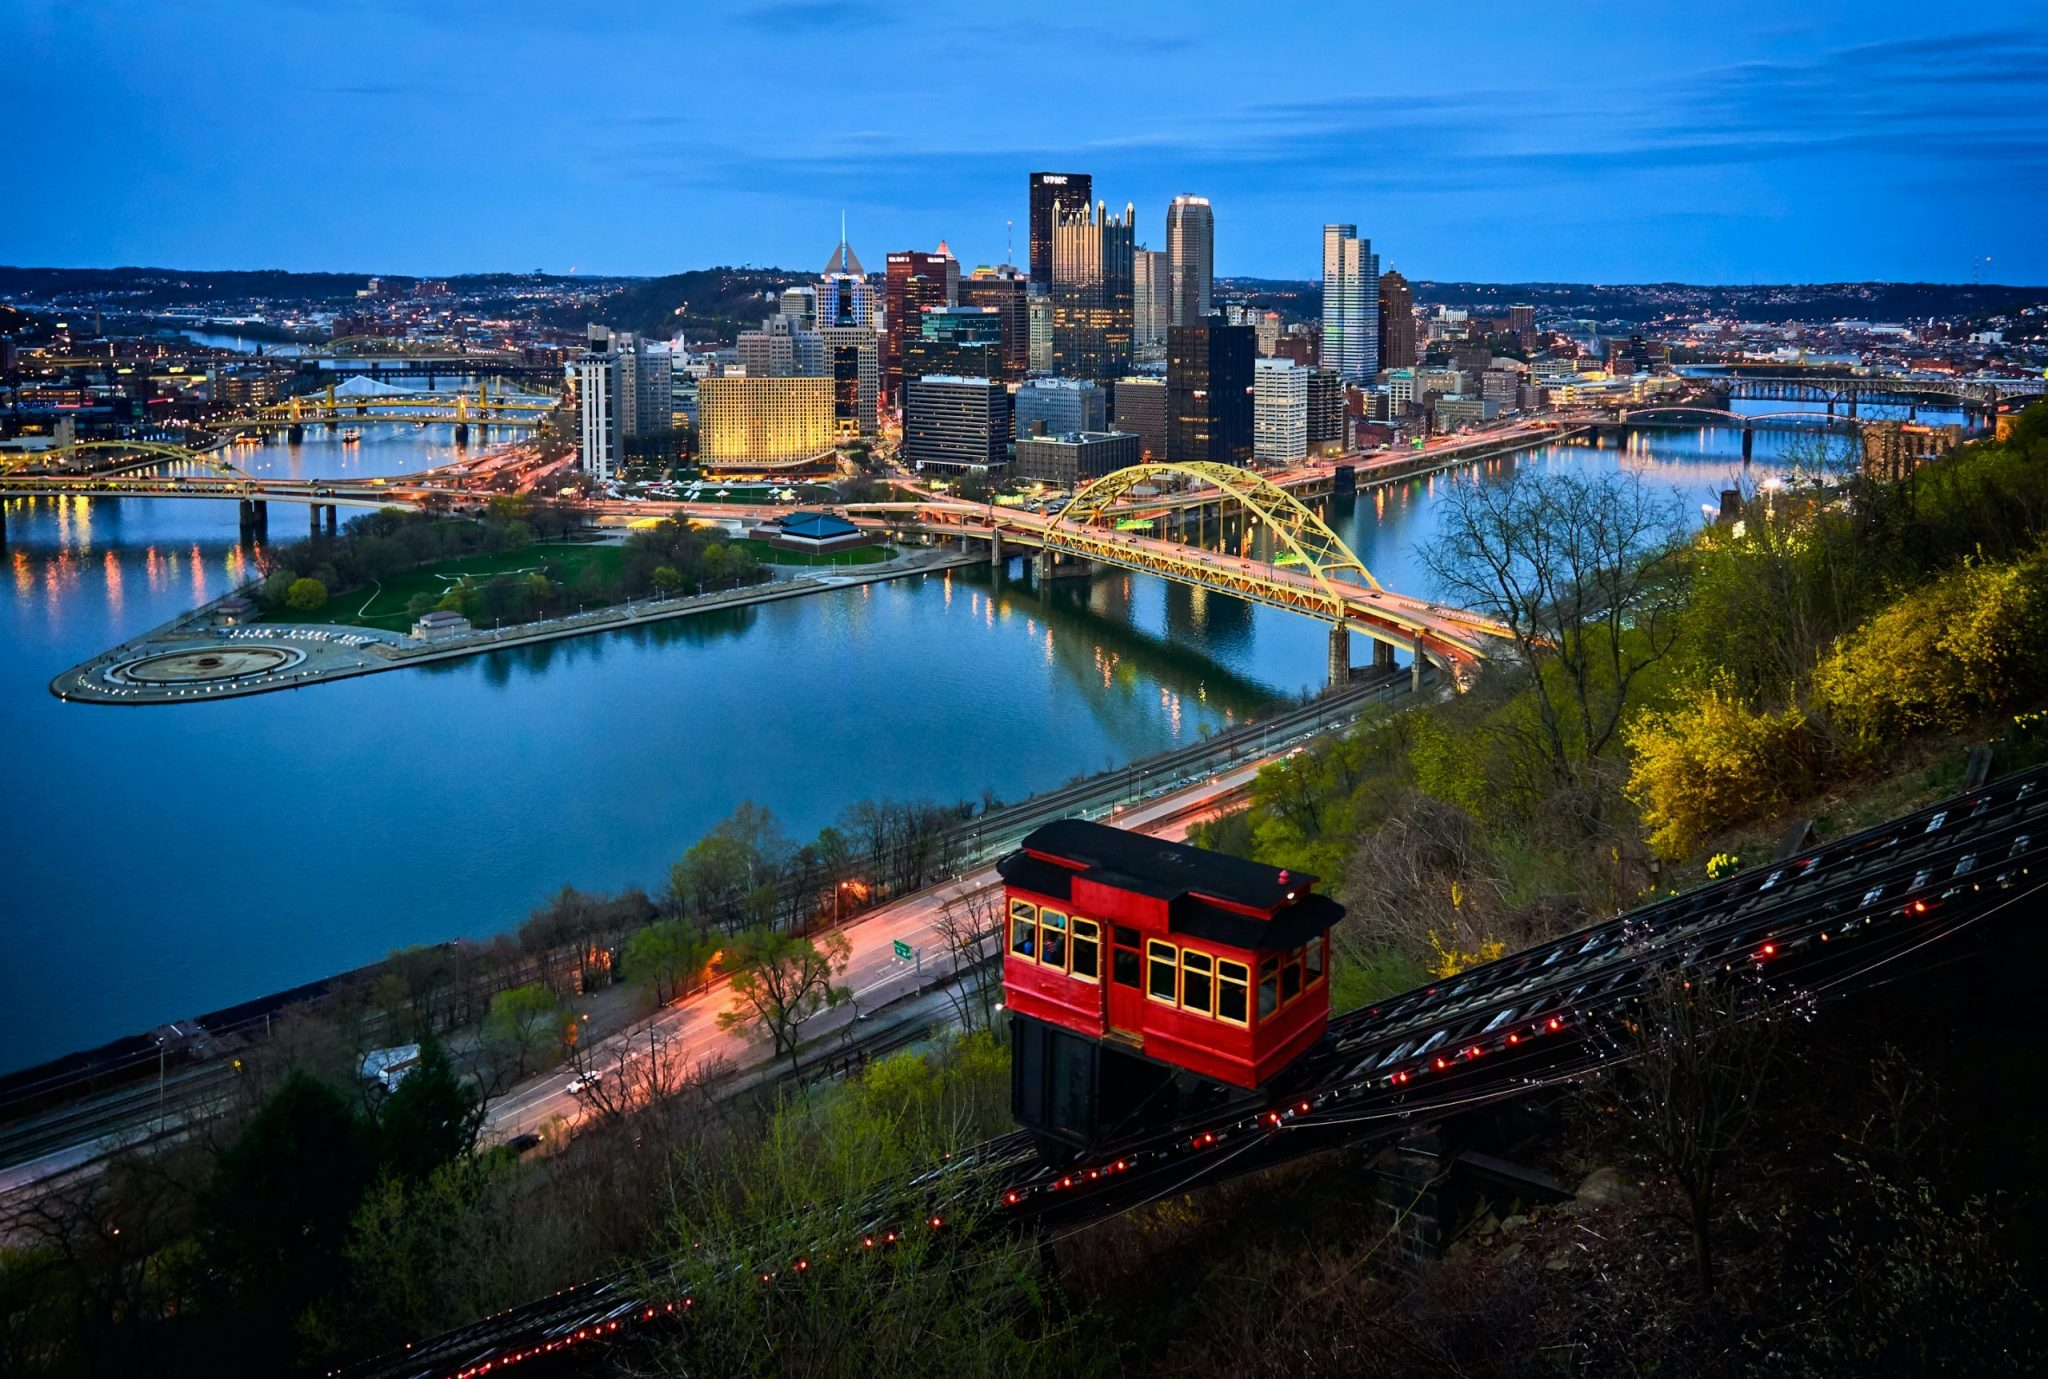 Explore things to do in Pittsburgh!